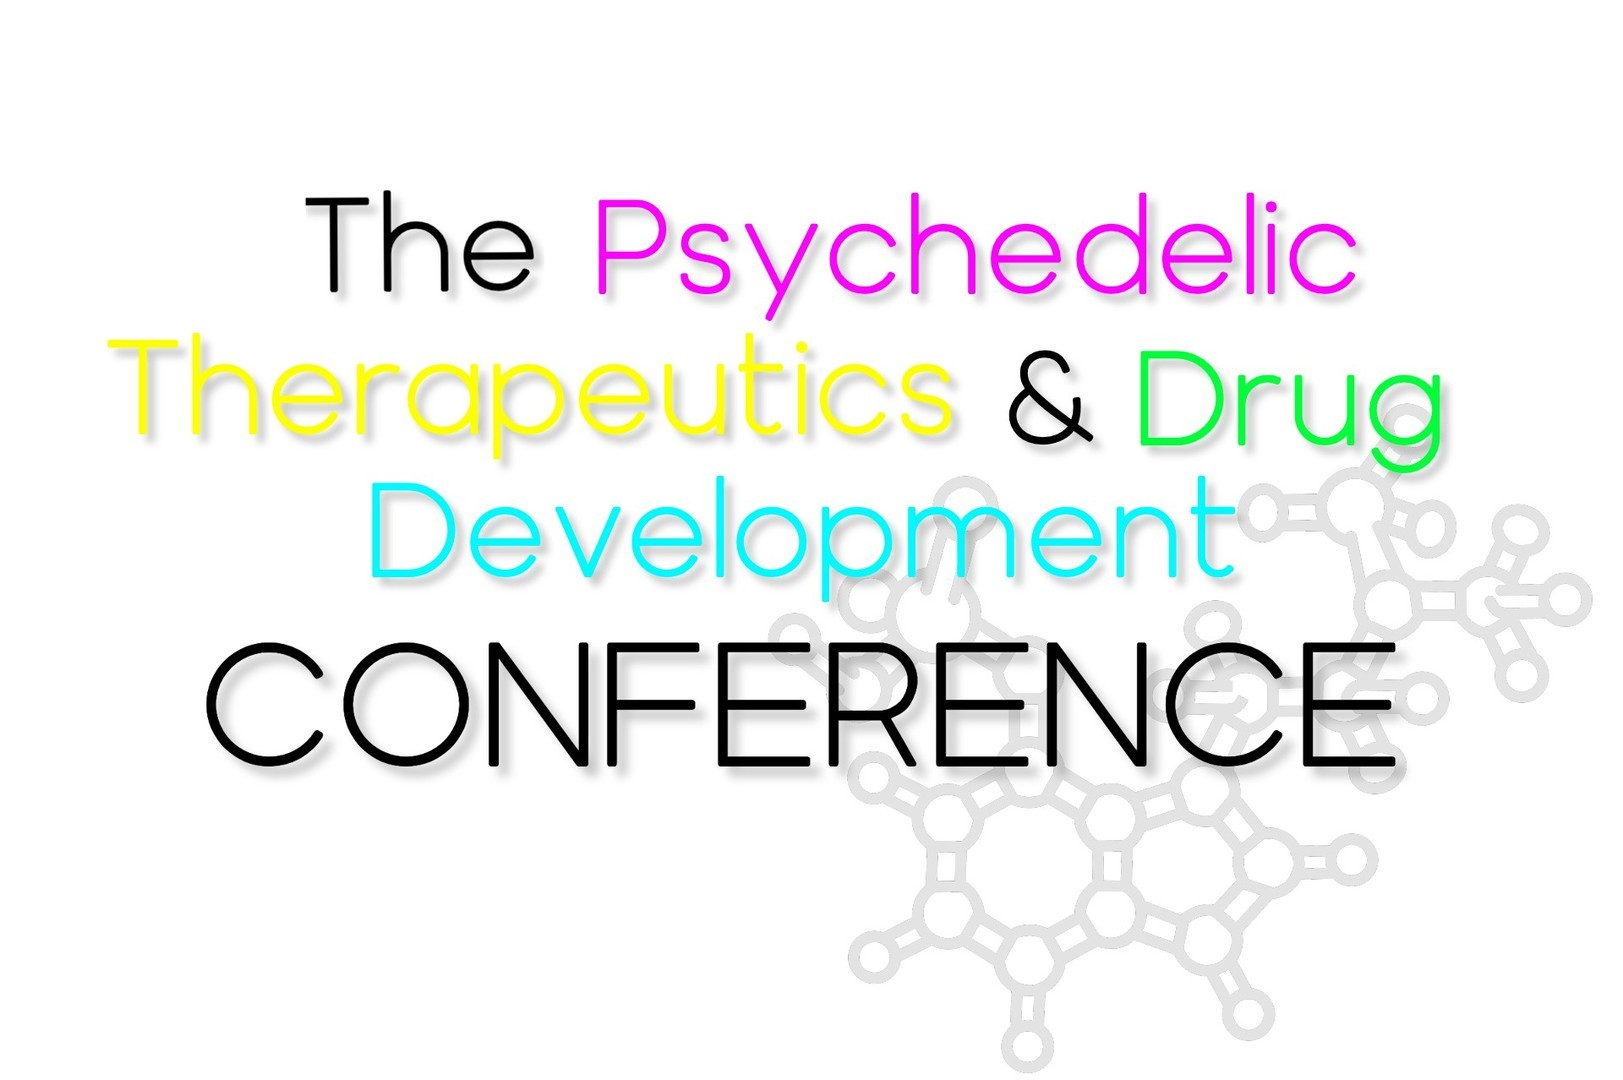 The Psychedelic Therapeutics and Drug Development Conference is bringing together the world's leading researchers in academia and industry to share novel research into psychedelic drug development.